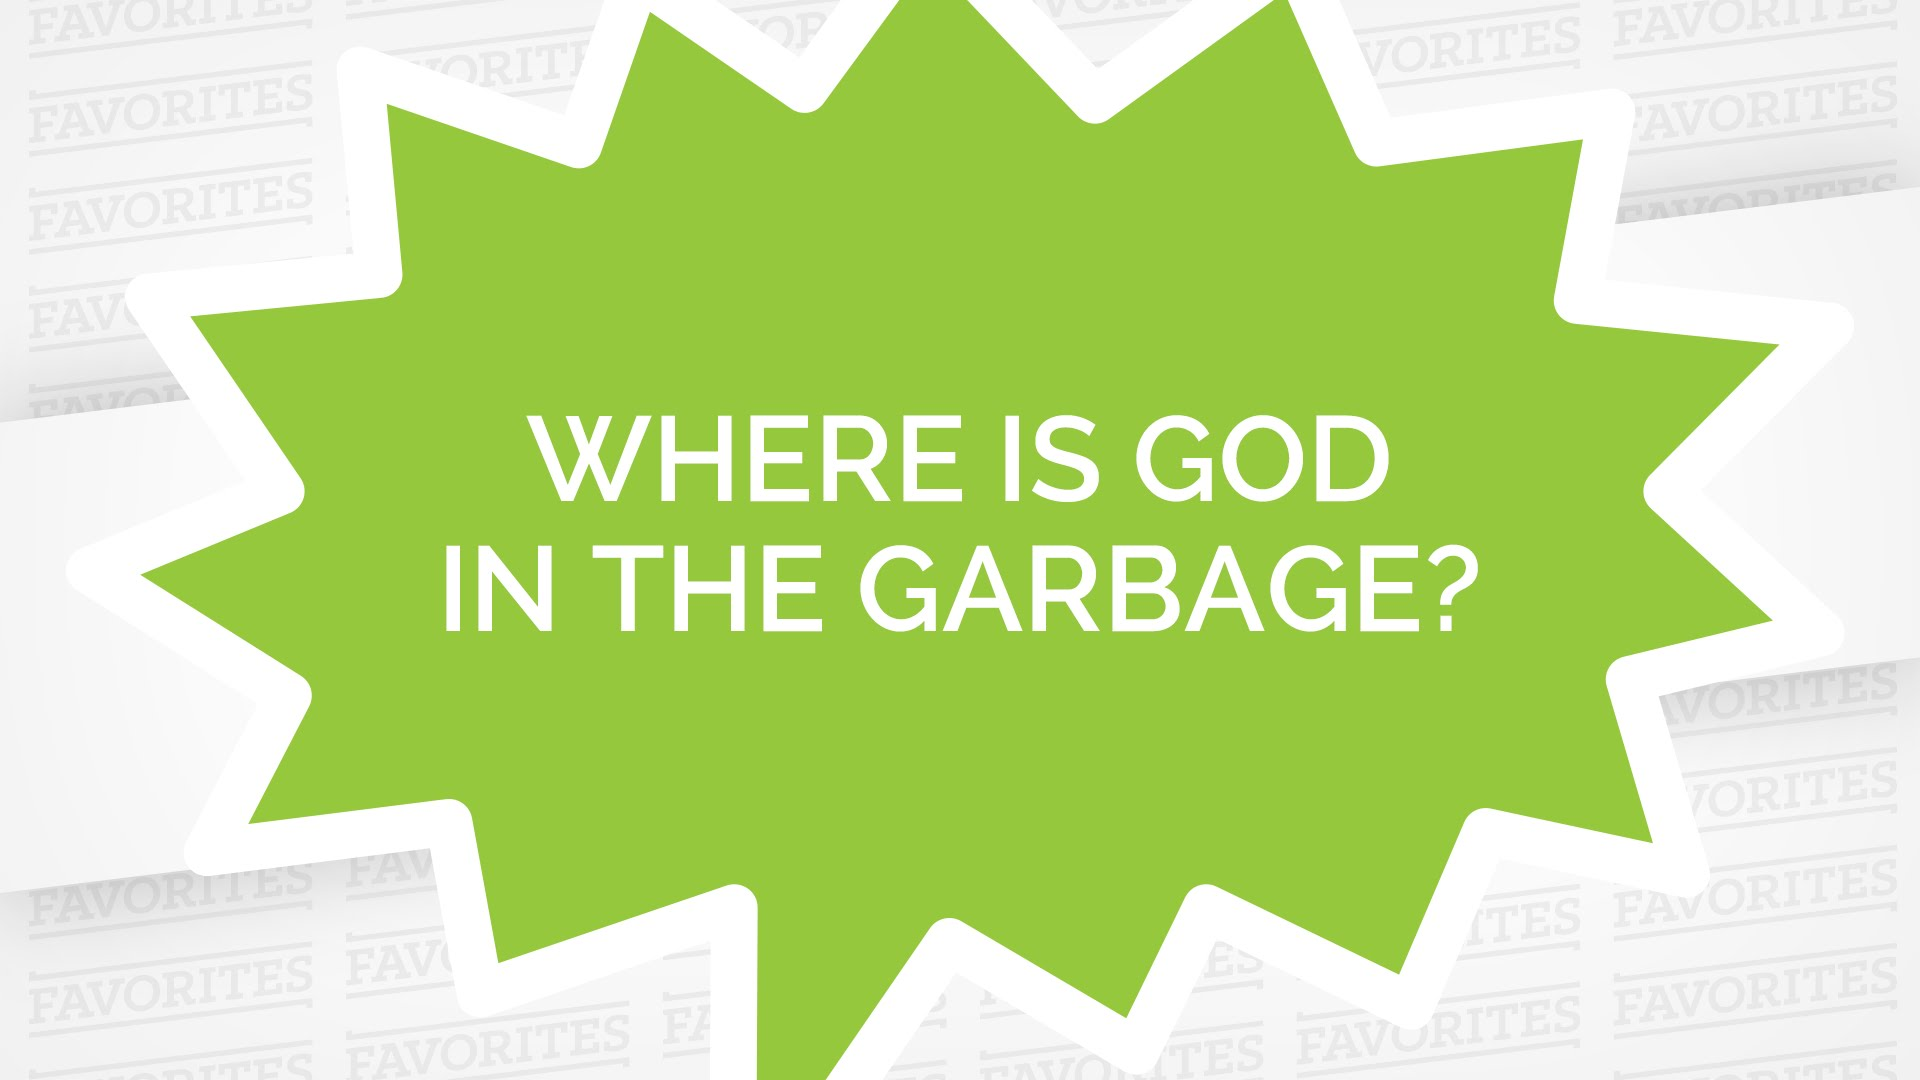 Where Is God in the Garbage?